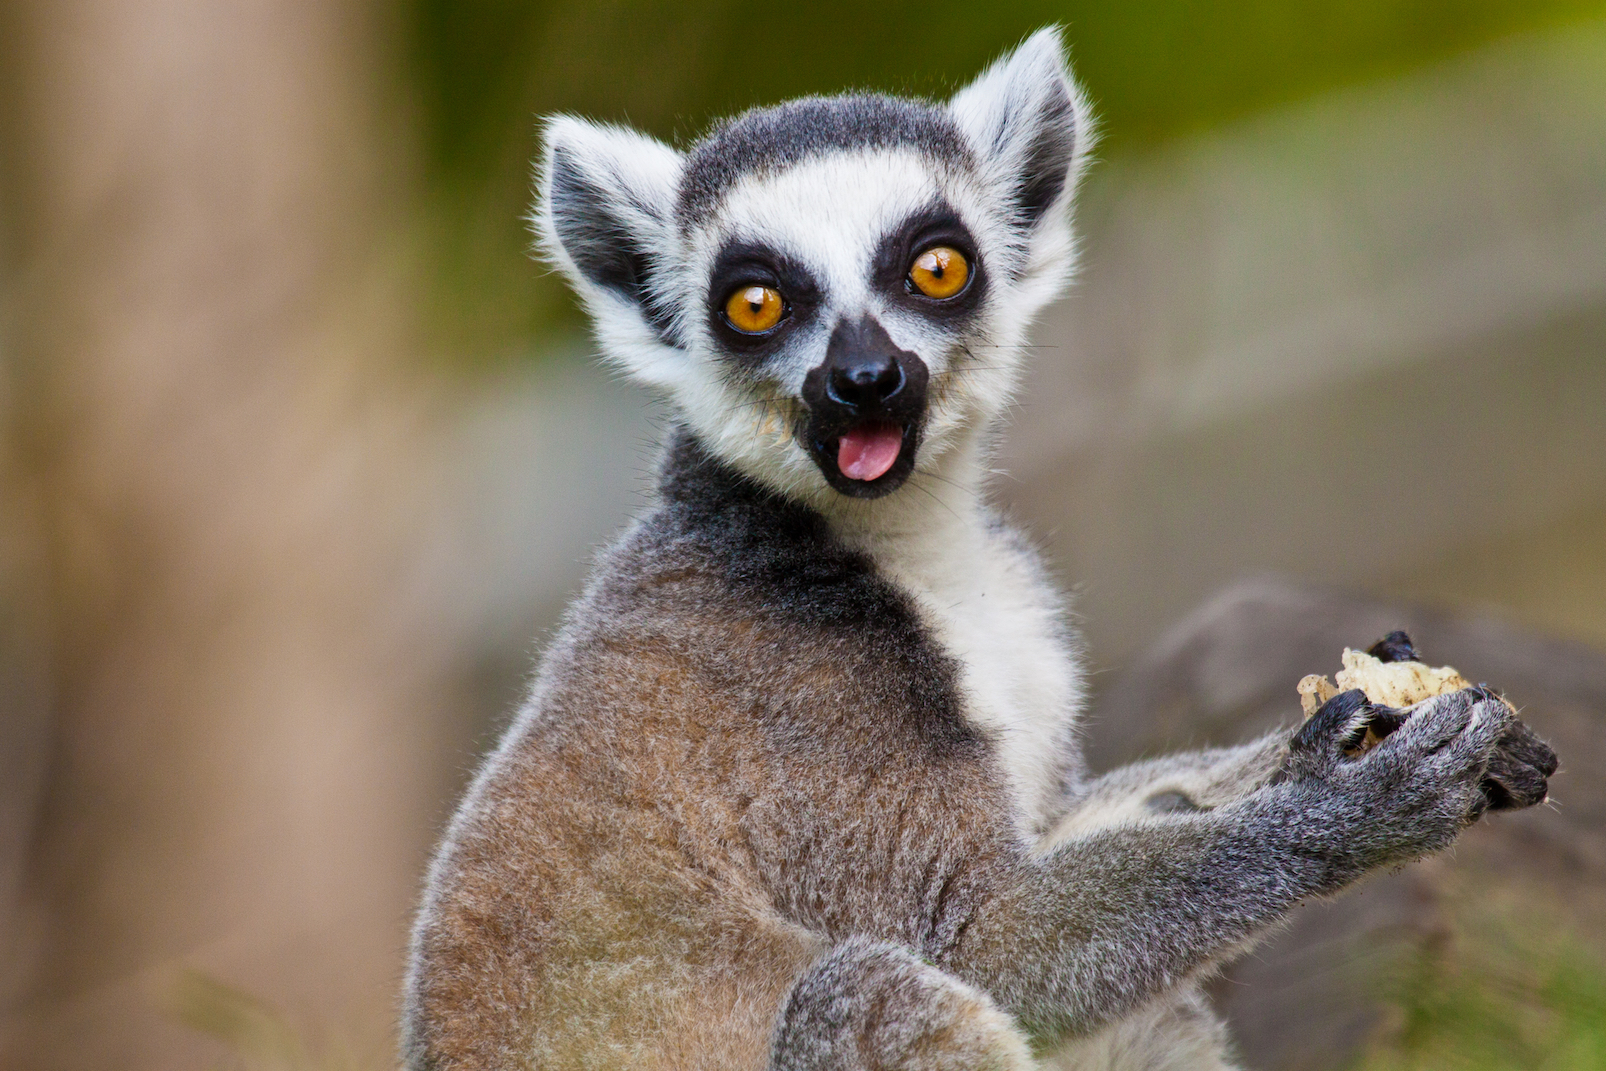 The new classification of a 20-million-year old fossil sheds insight on the evolution of lemurs and when they first populated Madagascar.The new classification of a 20-million-year old fossil sheds insight on the evolution of lemurs and when they first populated Madagascar.